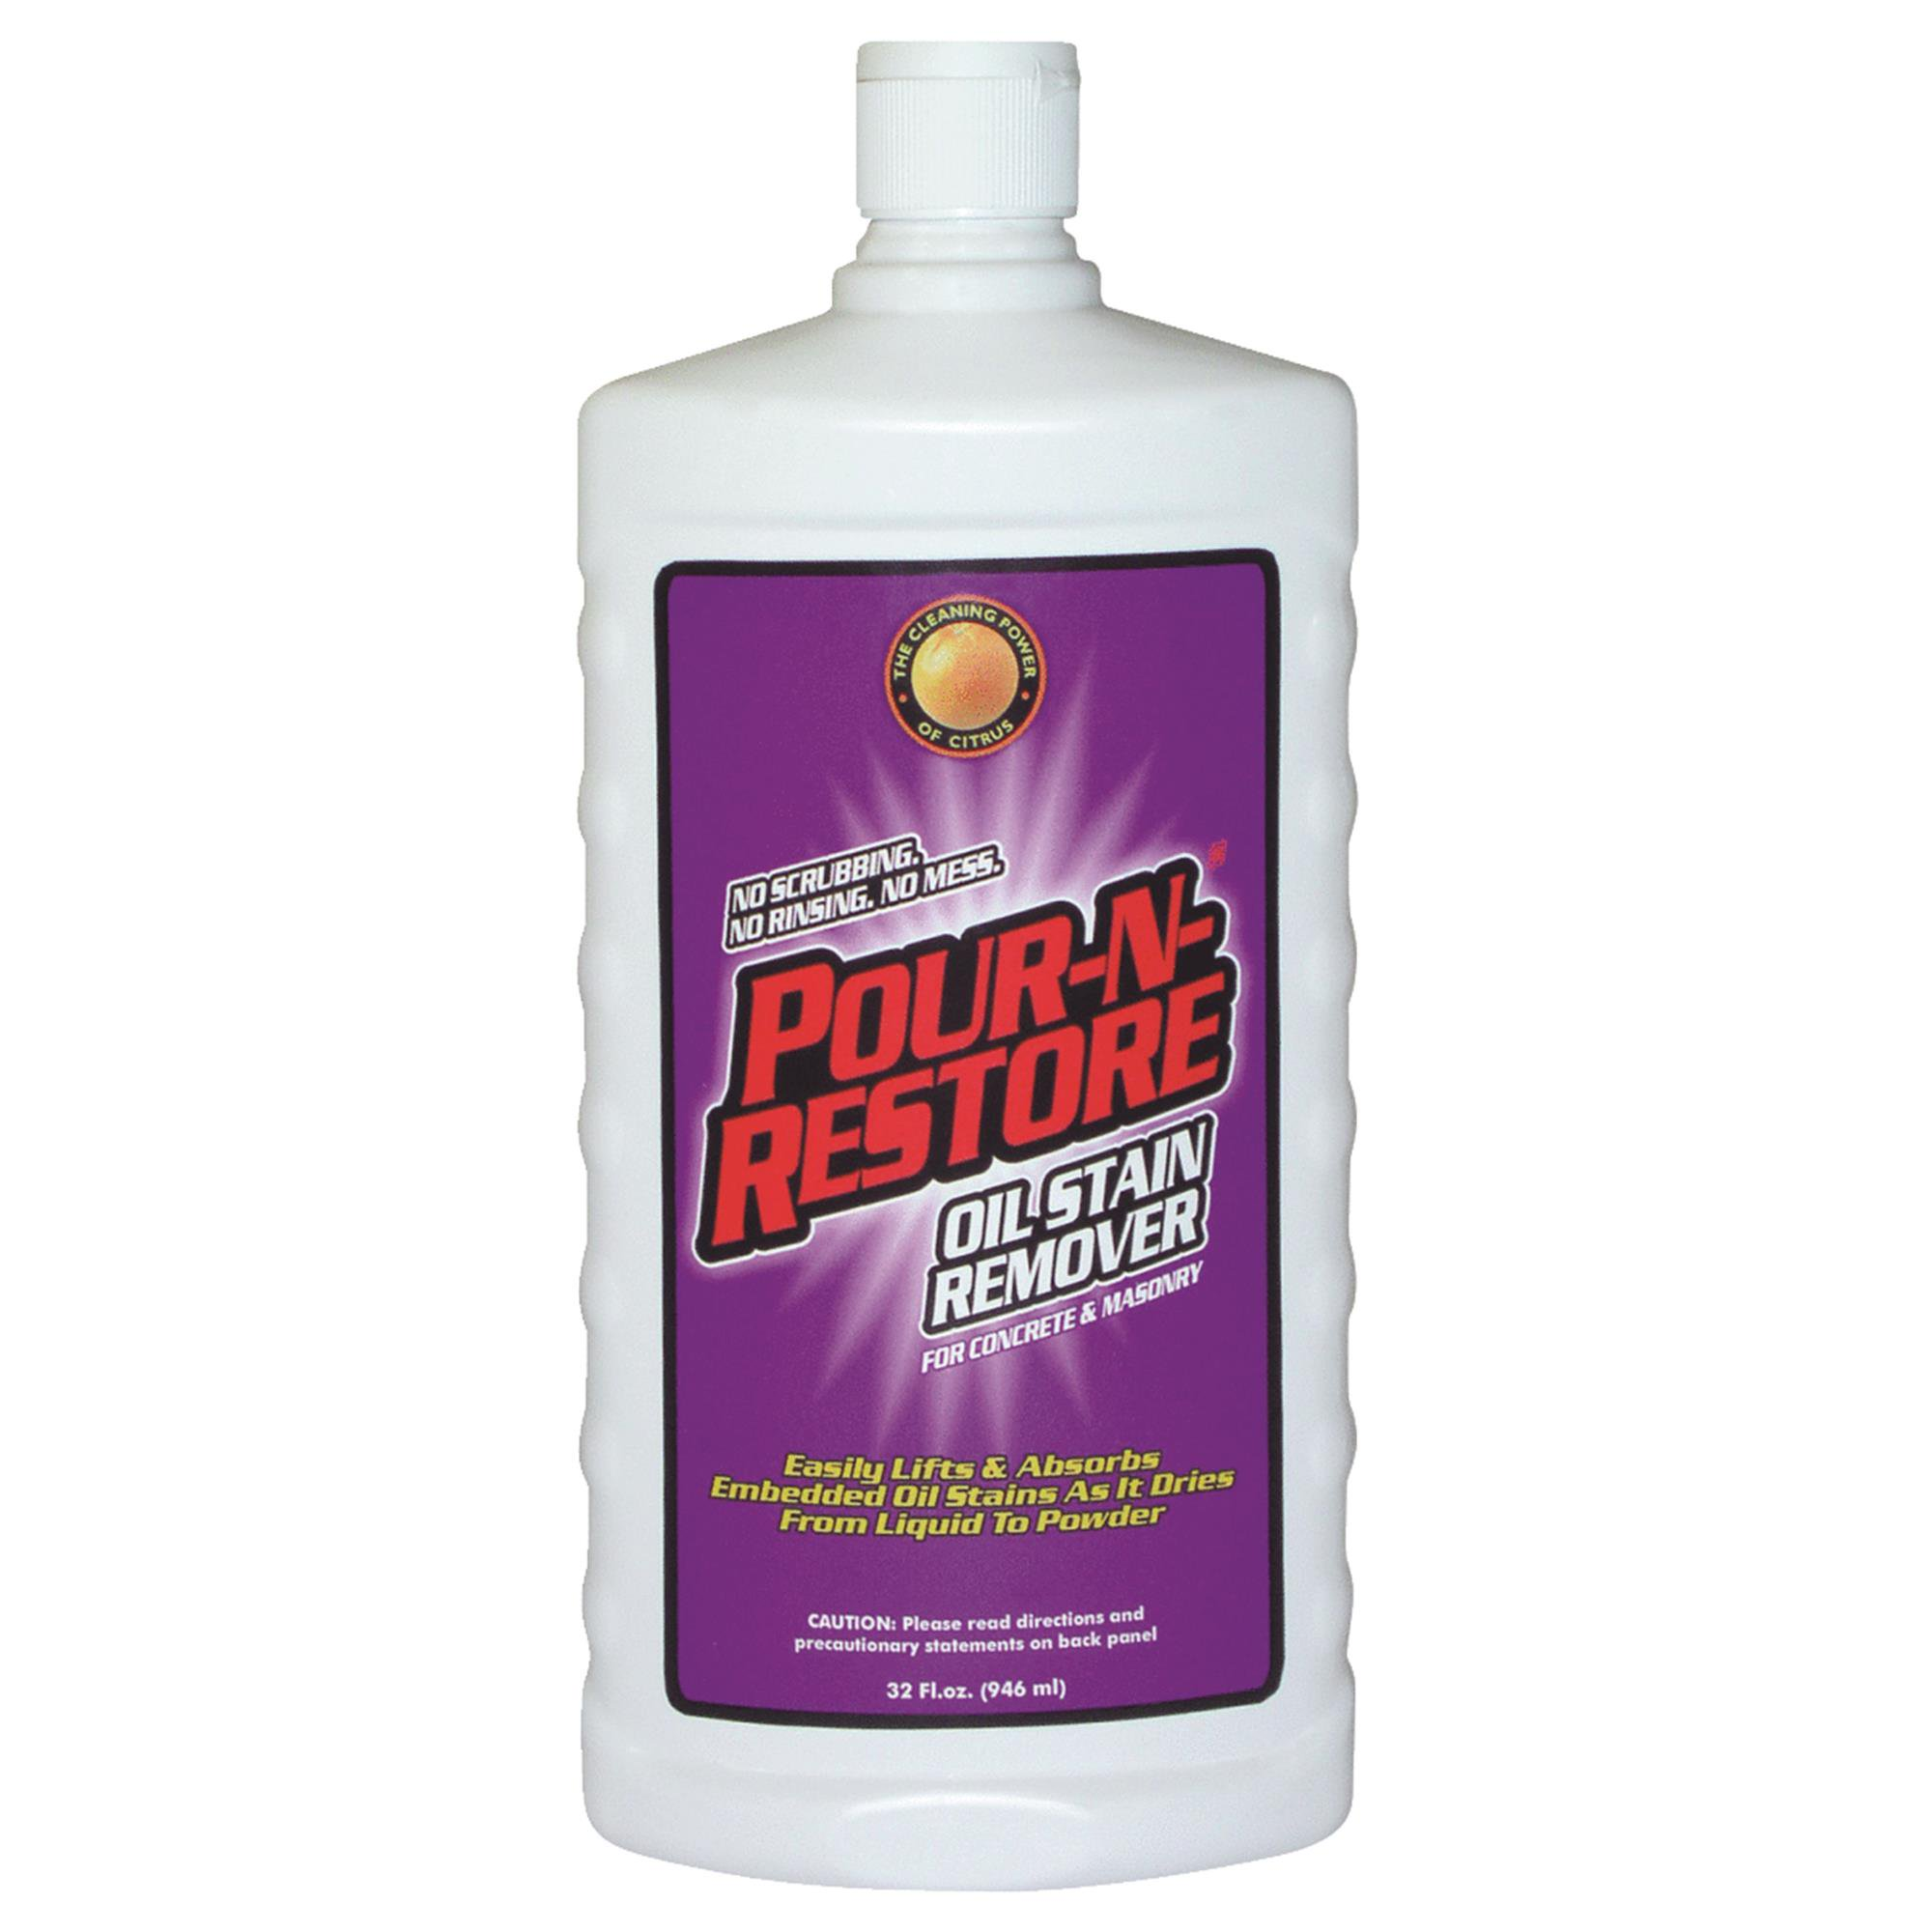 Dtep llc on walmart marketplace marketplace pulse for Garage oil stain remover